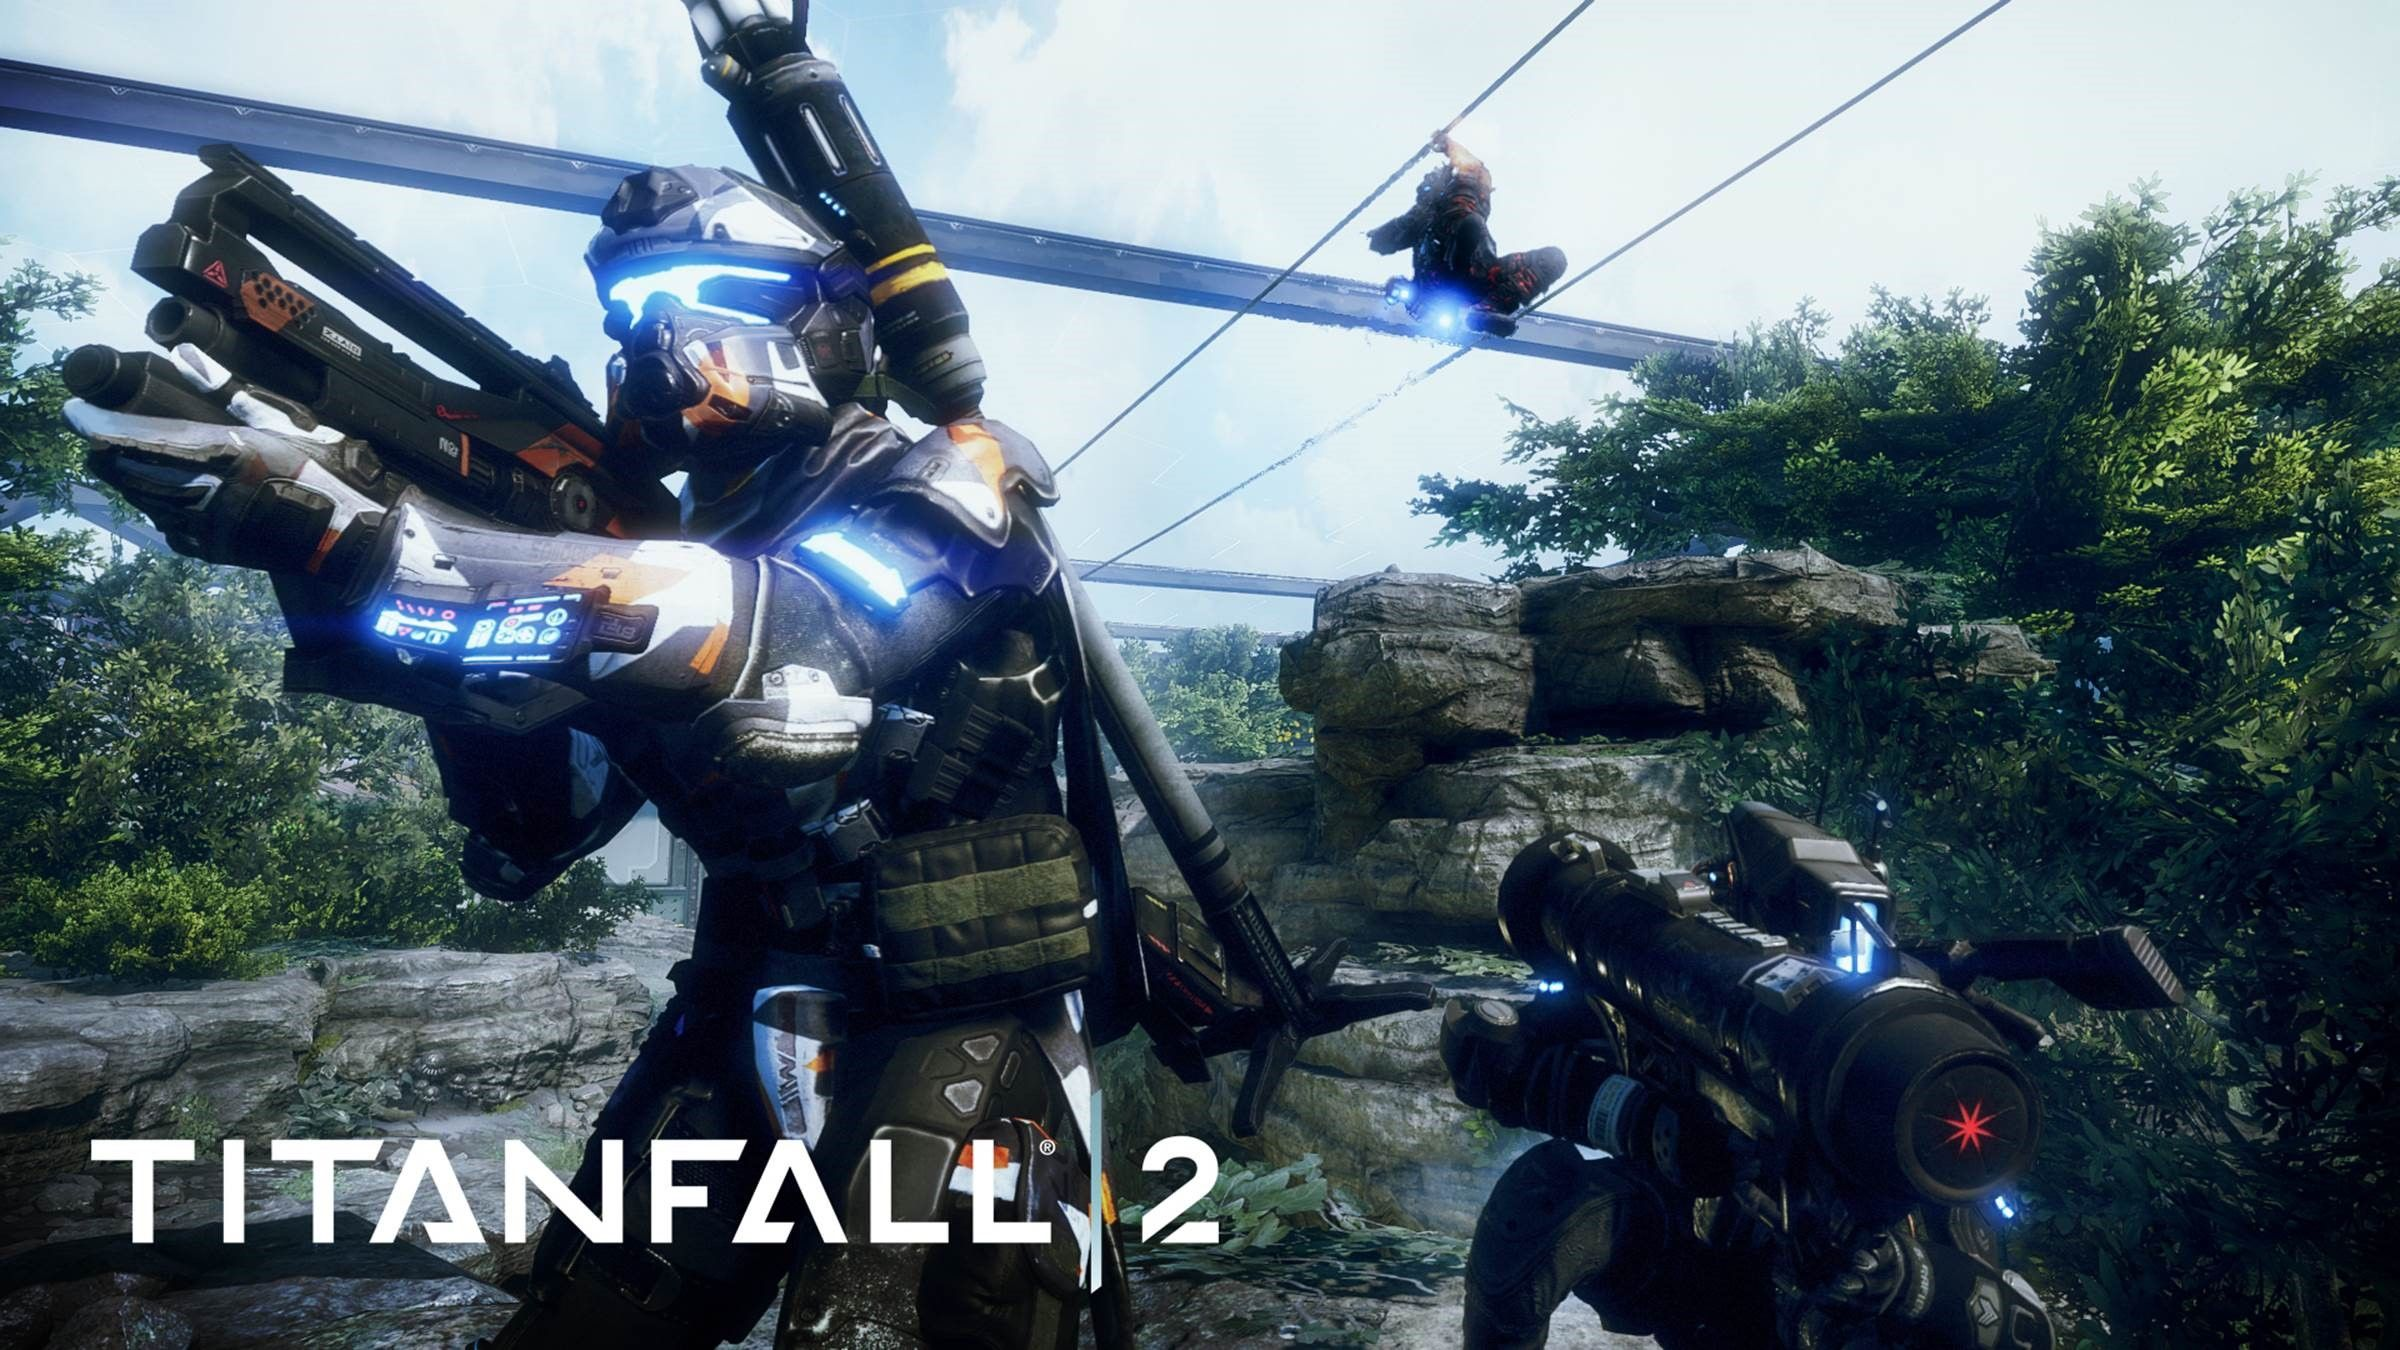 Titanfall 2 Live Fire Gameplay Trailer - http://www.gizorama.com/2017/news/titanfall-2-live-fire-gameplay-trailer